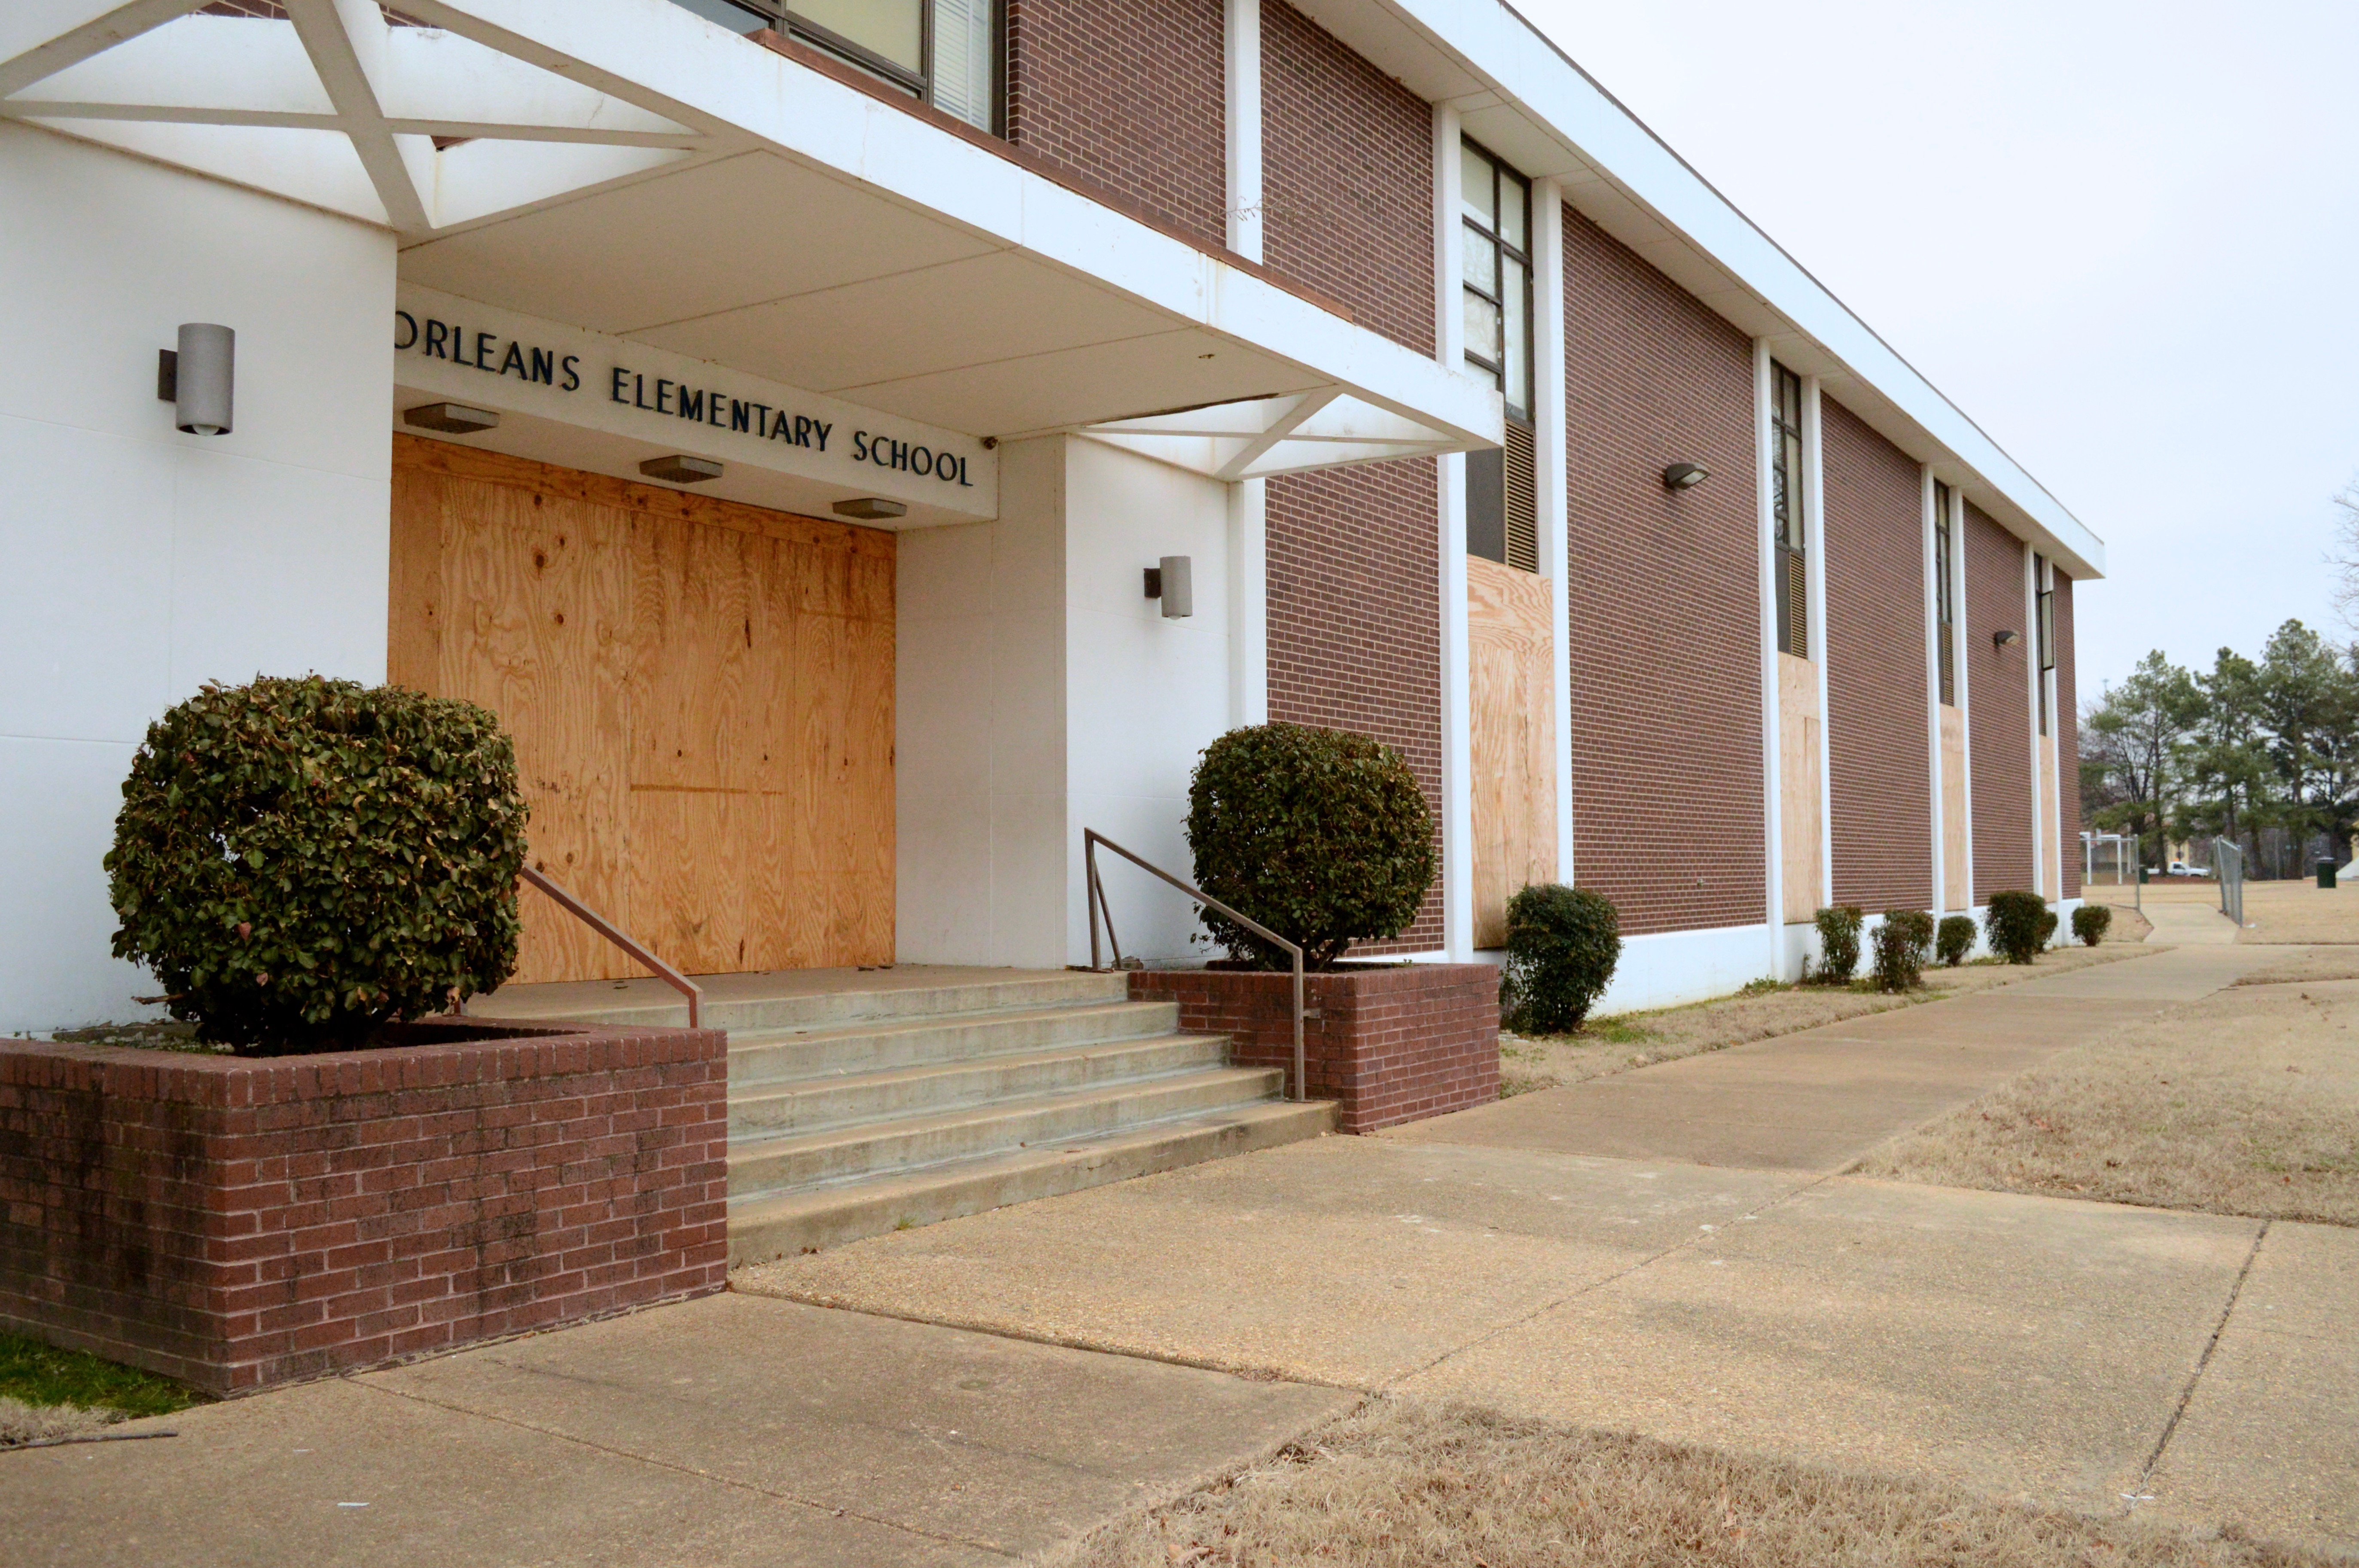 A boarded-up Orleans Elementary School is among Memphis schools closed since 2012.